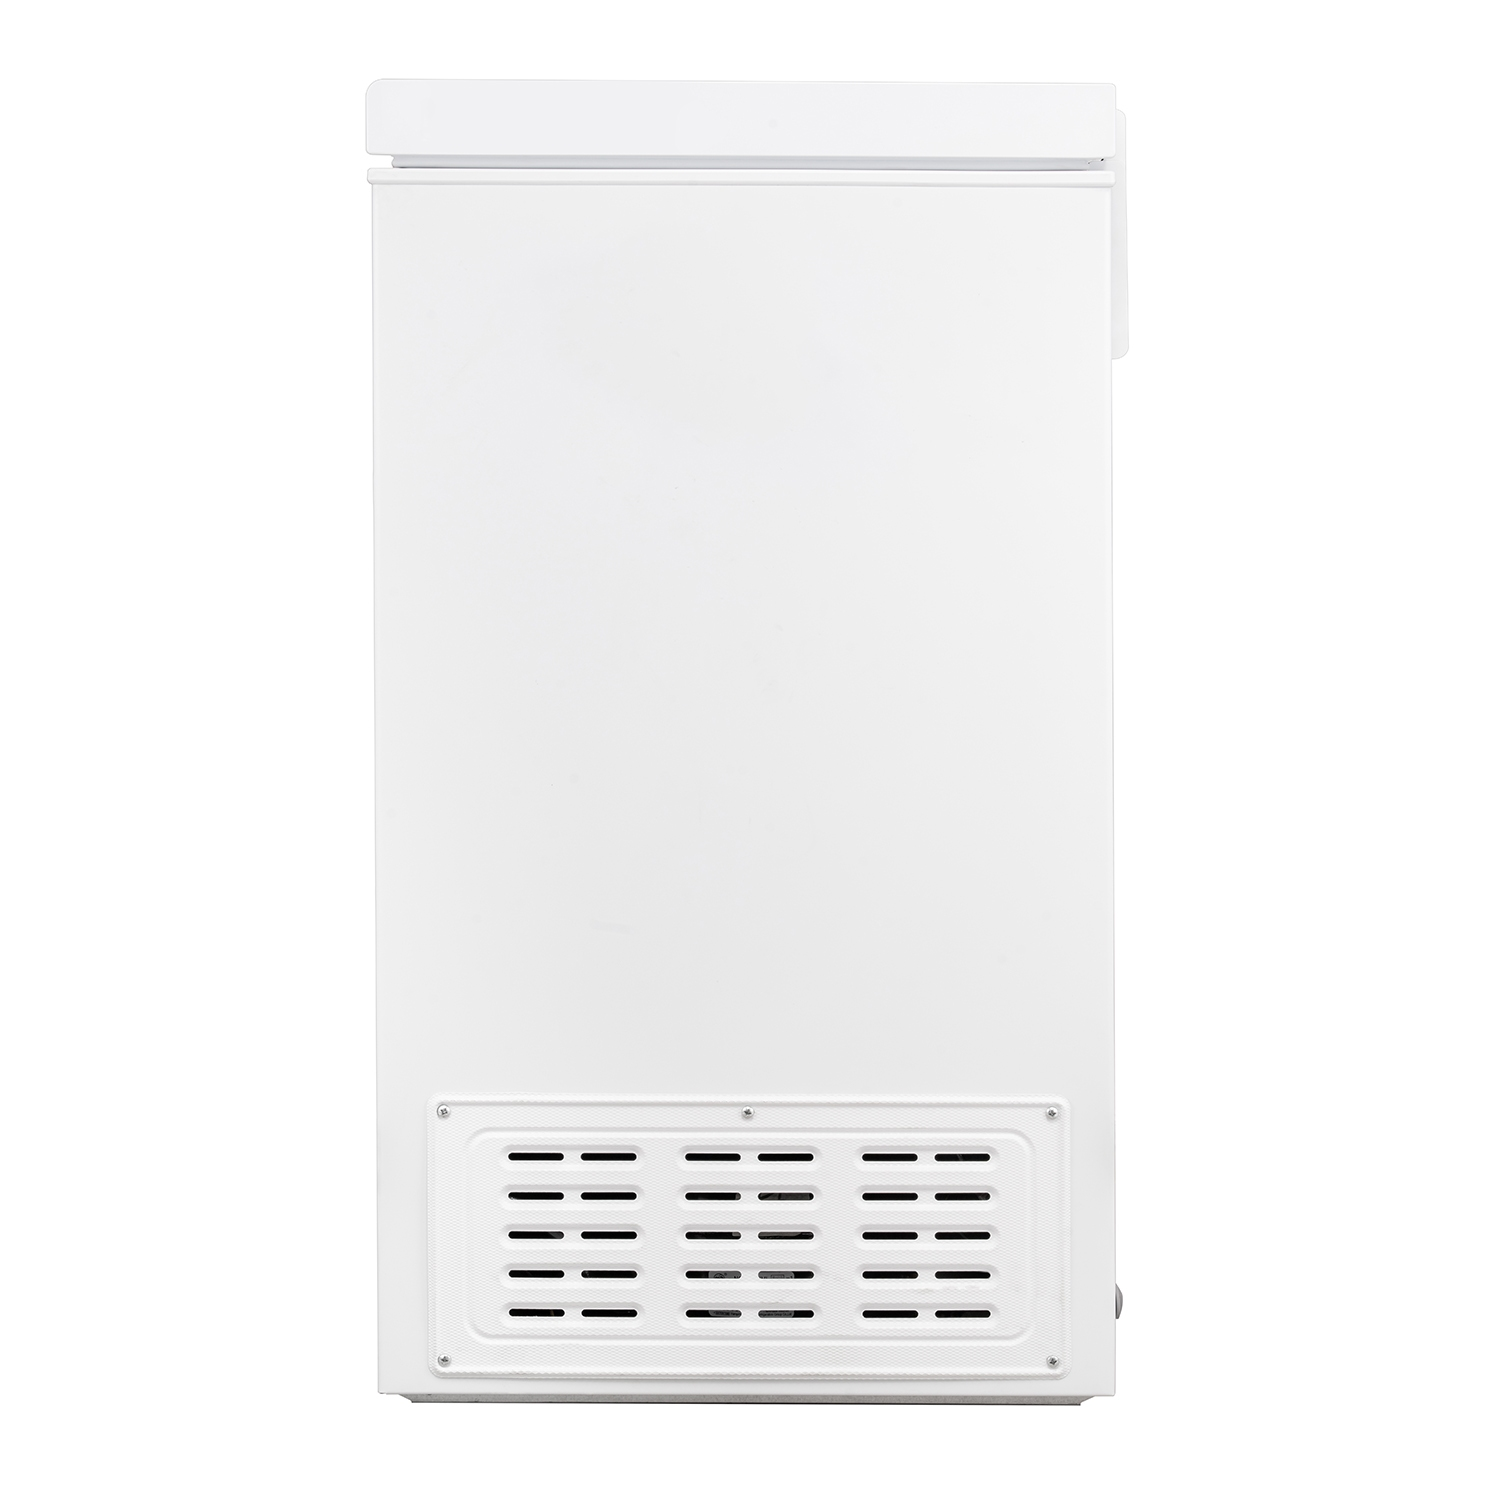 Fridgemaster 55cm Static Chest Freezer - White - A+ Energy Rated - 3